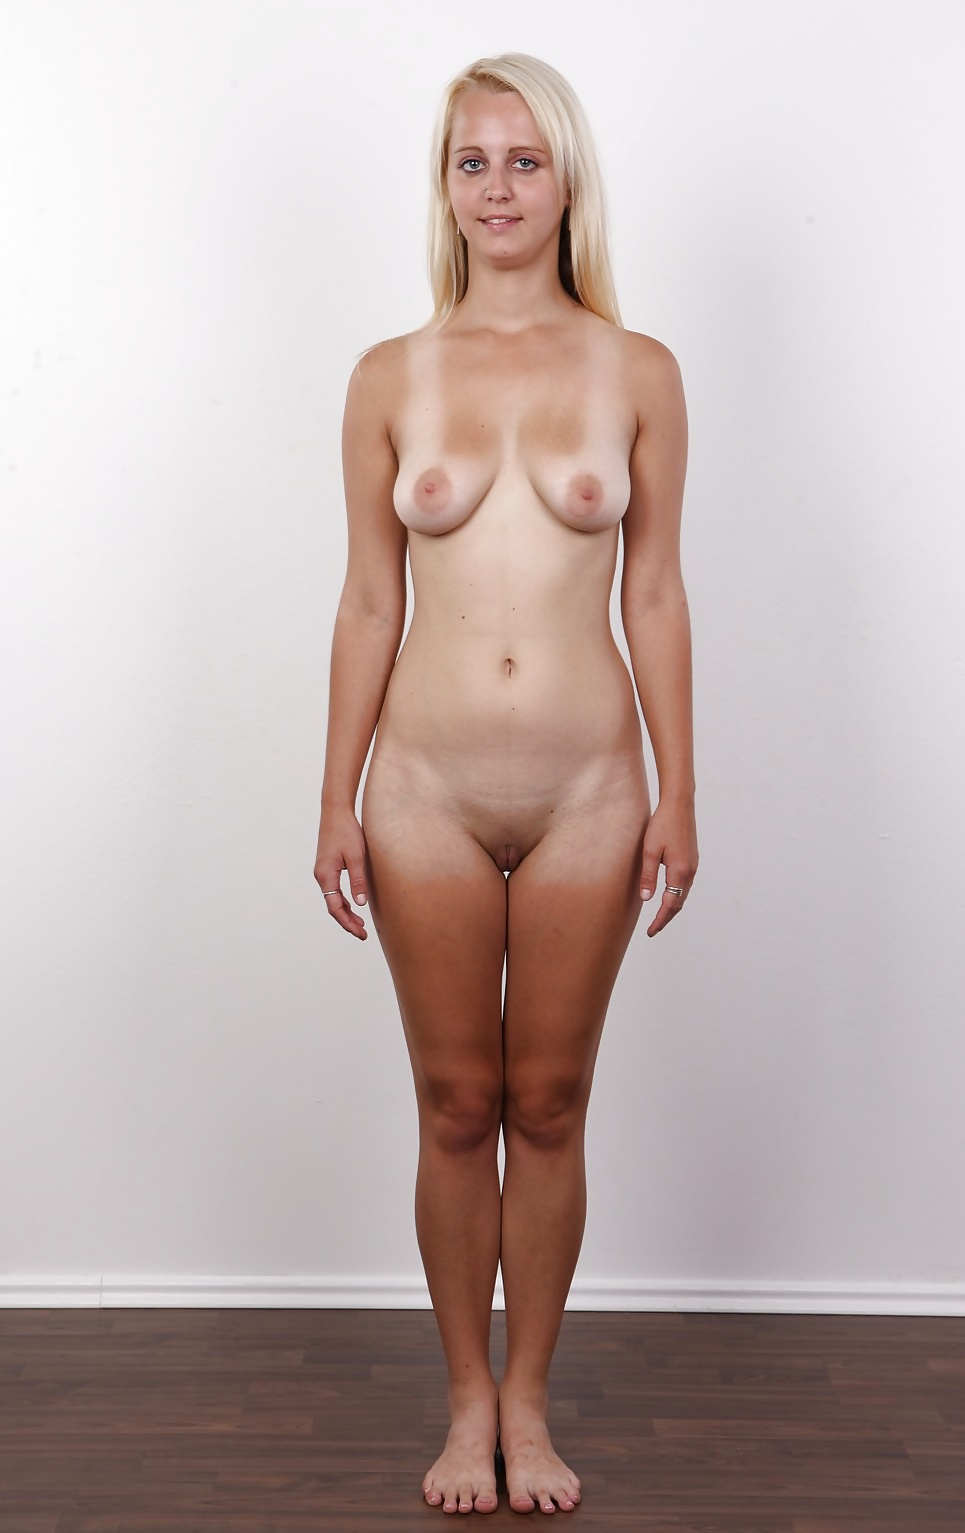 Casting 90 Ugly But Nice Body - 7 Pics  Xhamster-5095